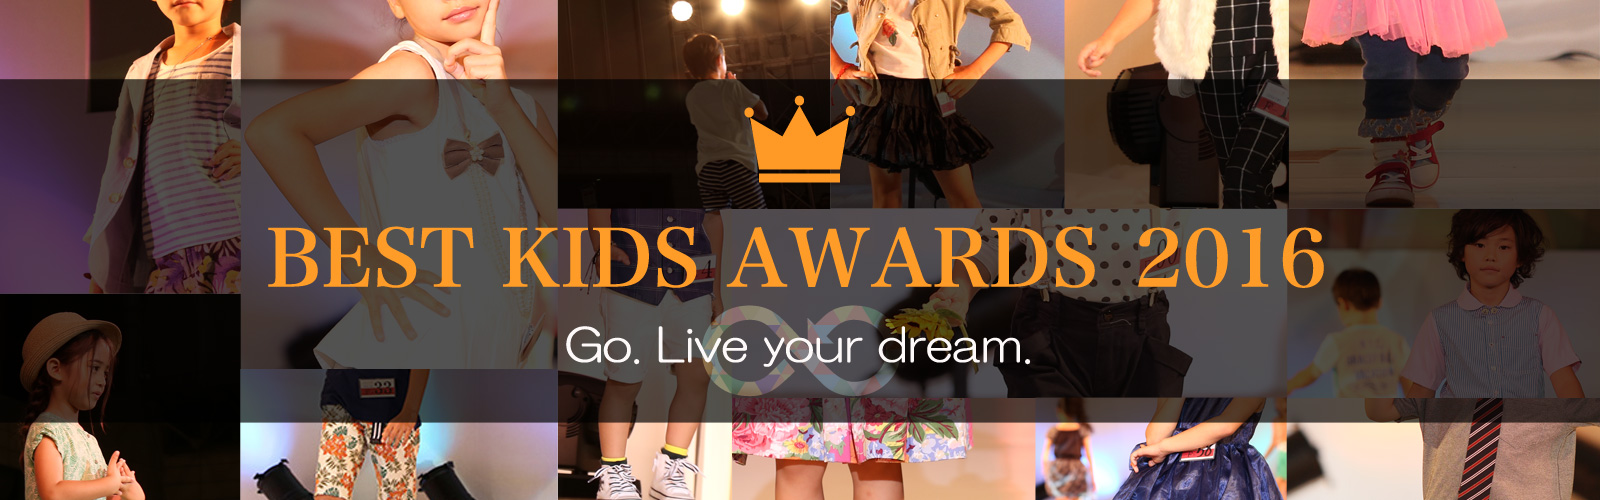 BEST KIDS AWARDS 2016